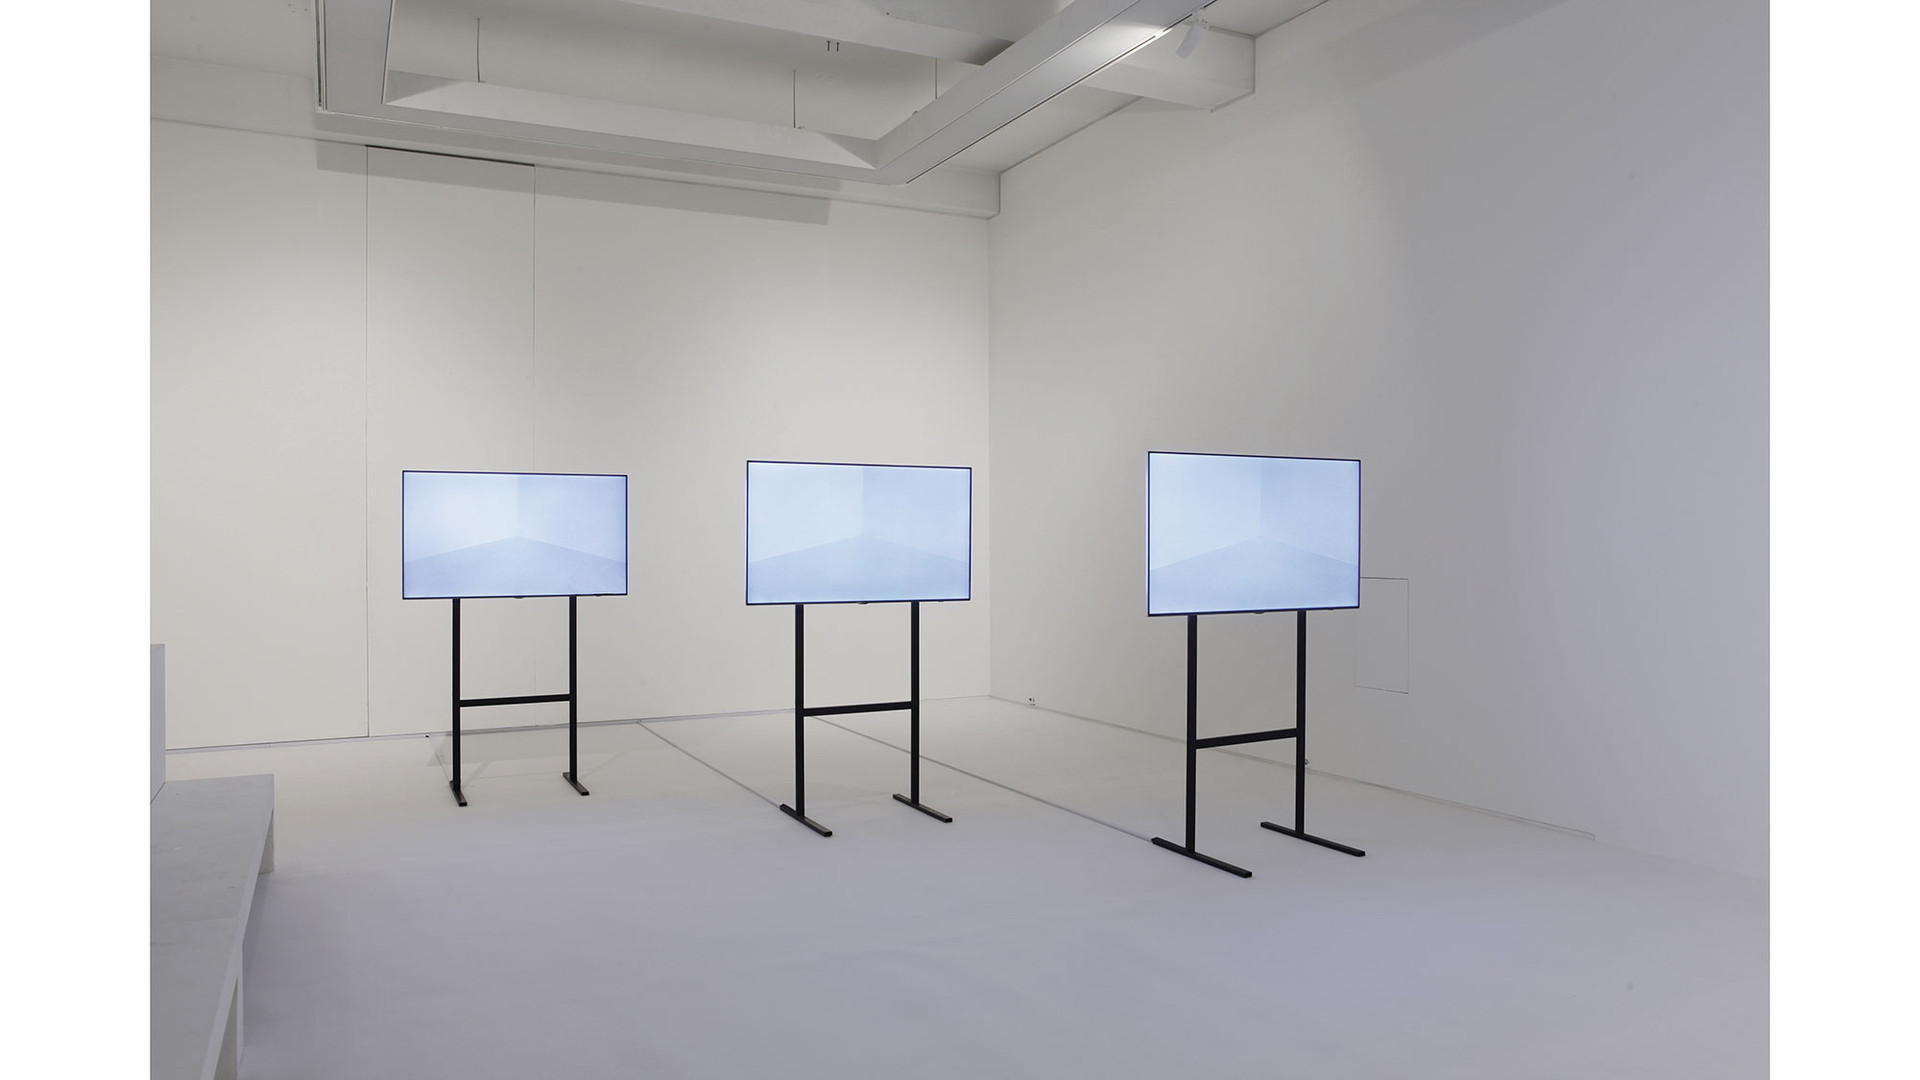 Installation view of Uncommon Sense, Salon de H, 2015